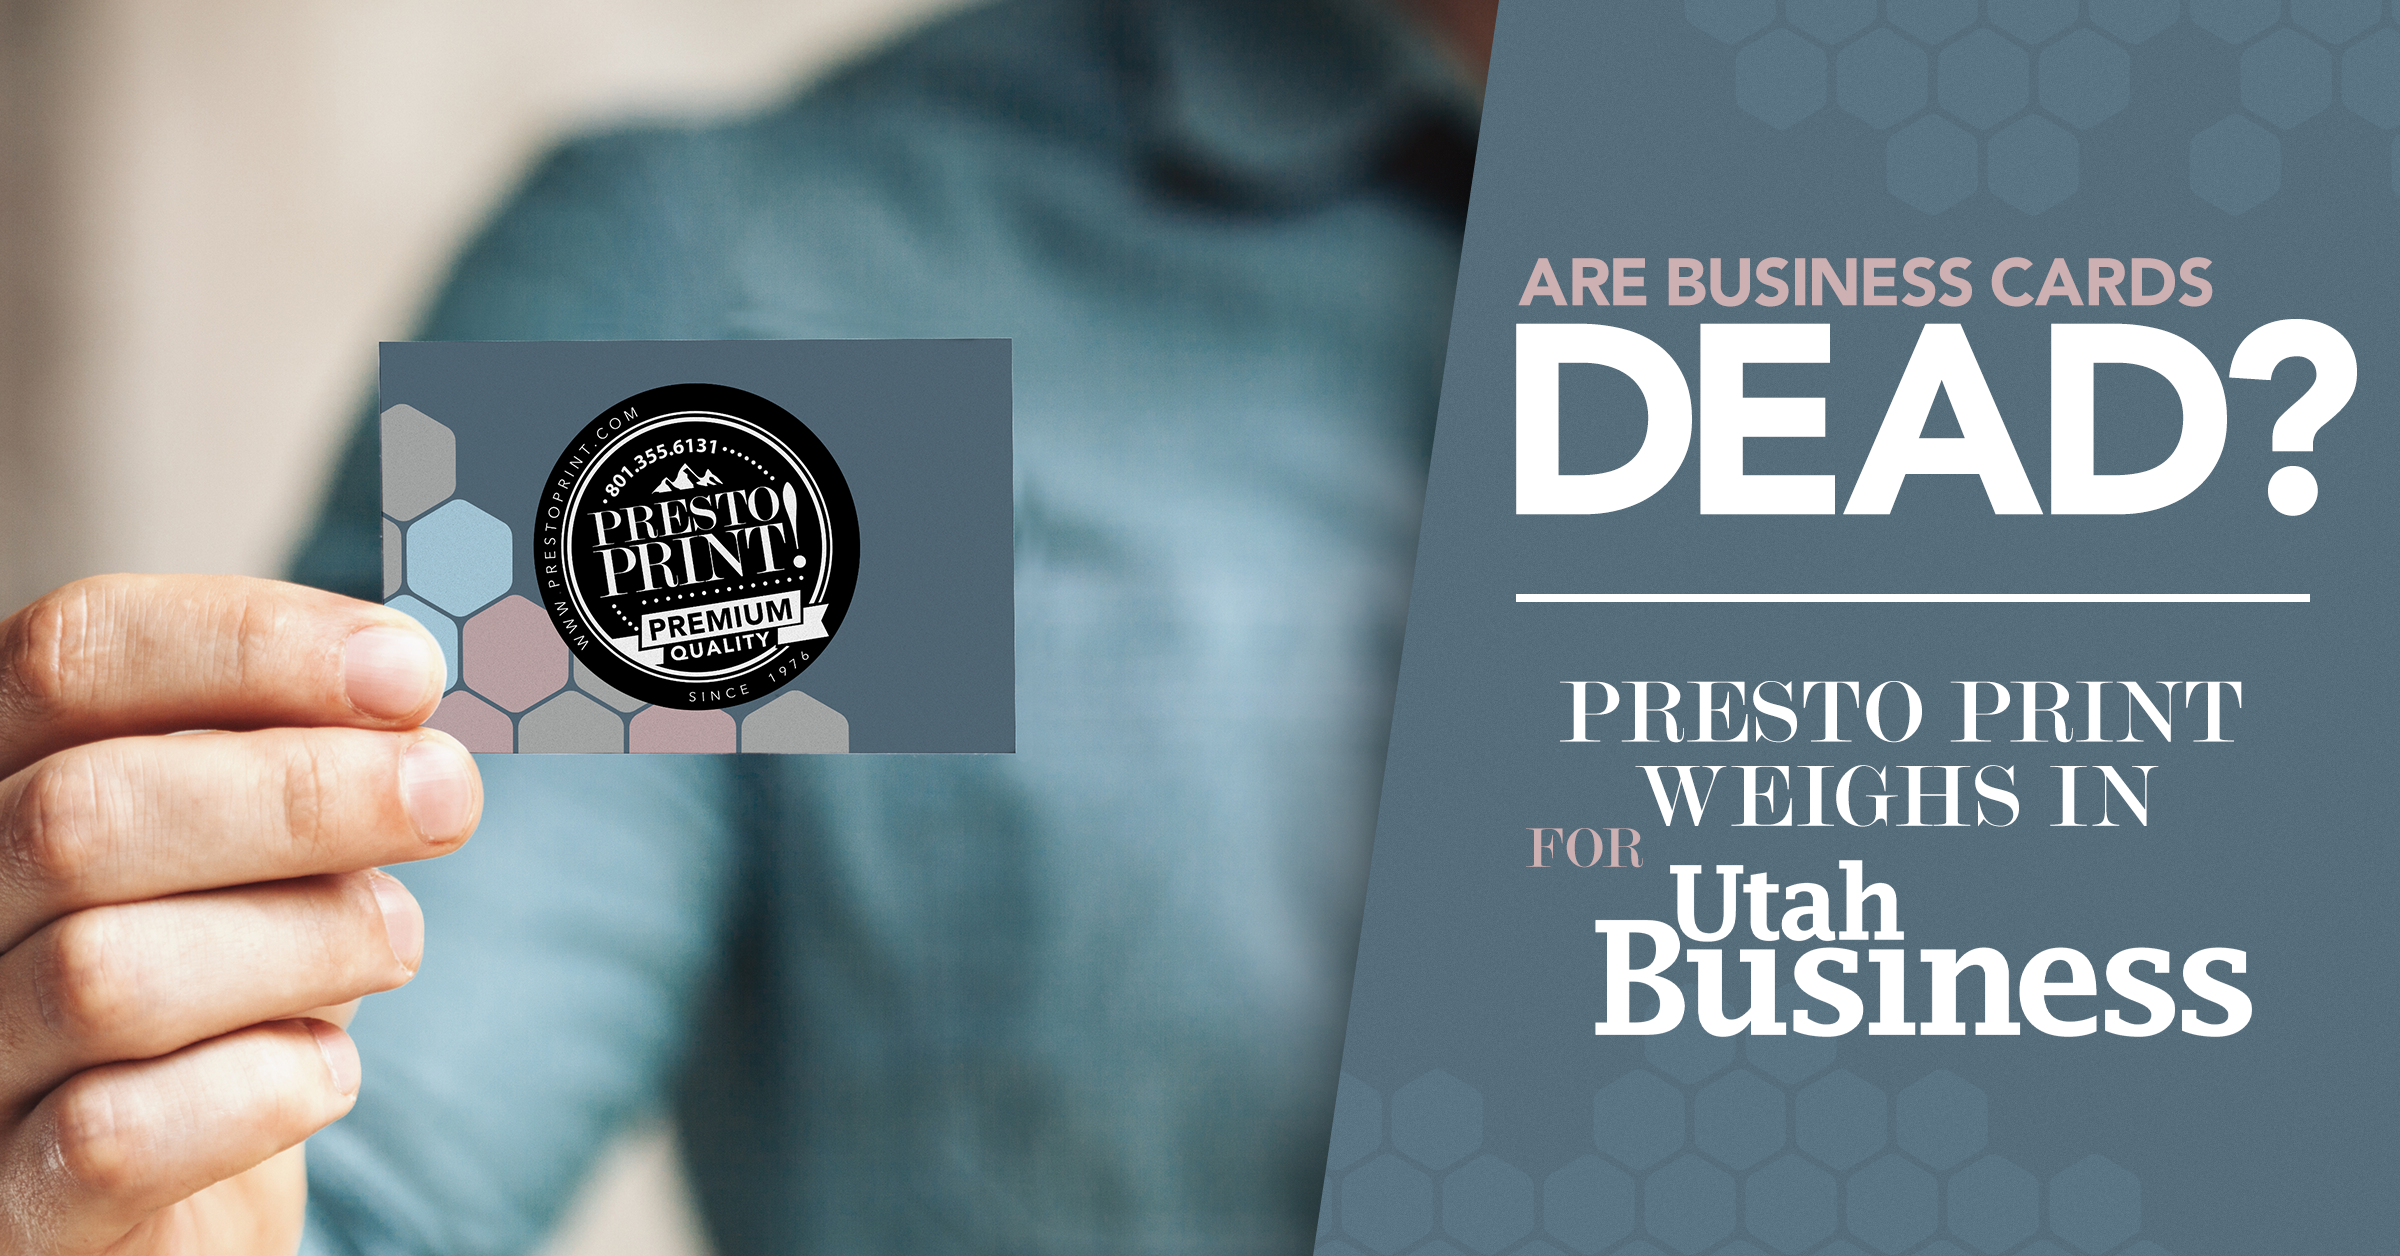 Are Business Cards Dead?